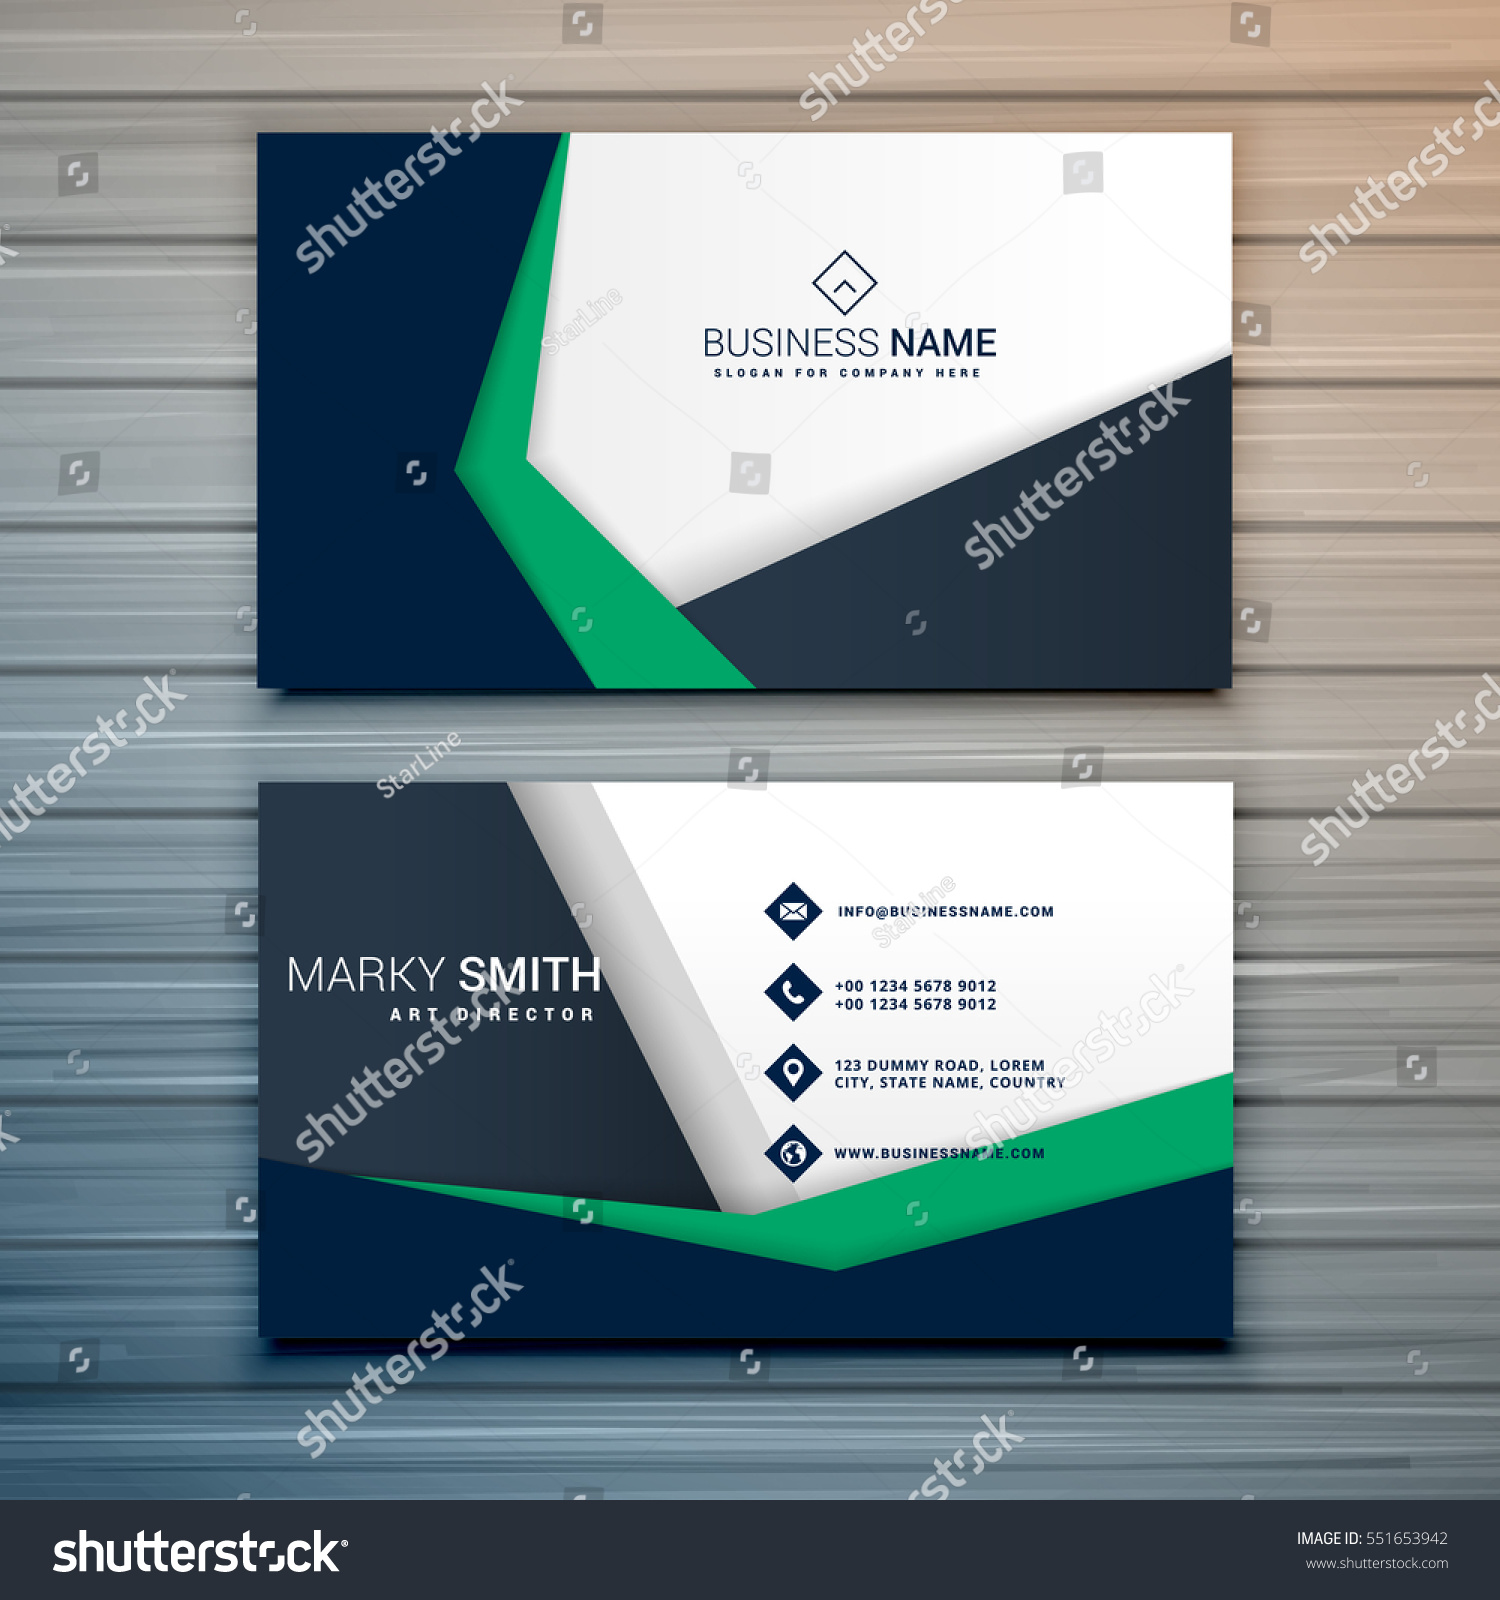 Company Business Card Design Abstract Geometric Stock Vector ...